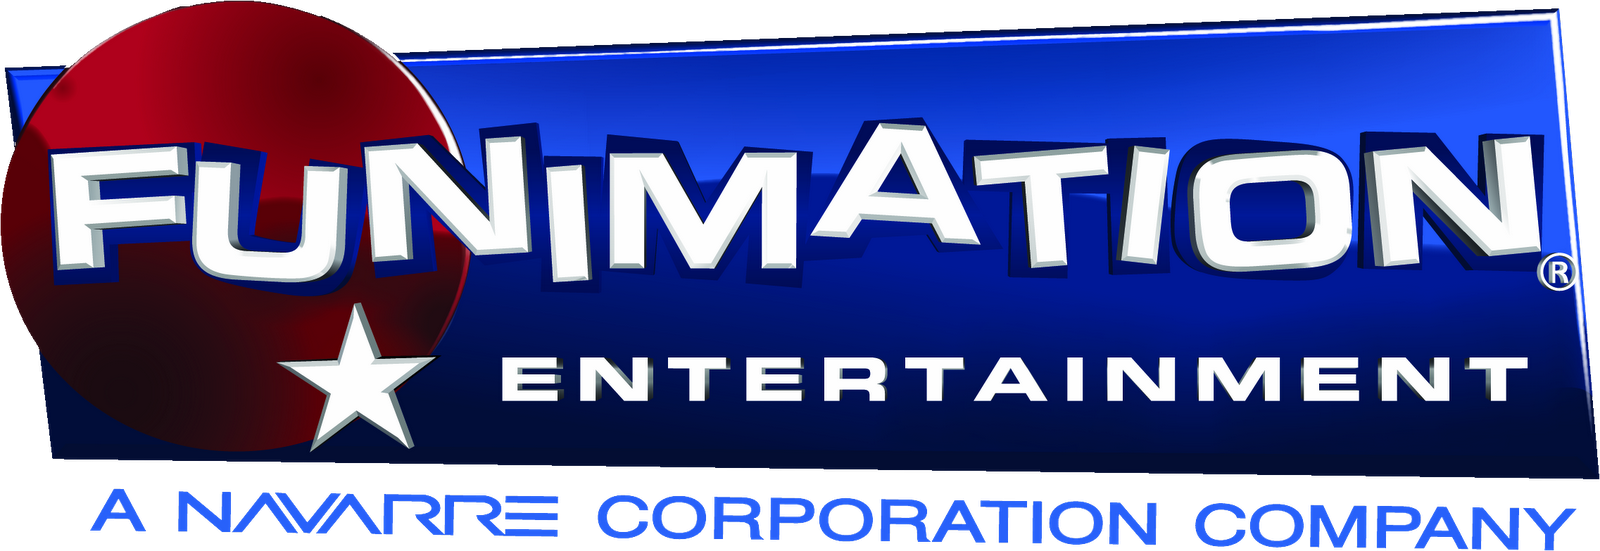 Pin by Kurtiss Hare on Graphic design (logos) Funimation